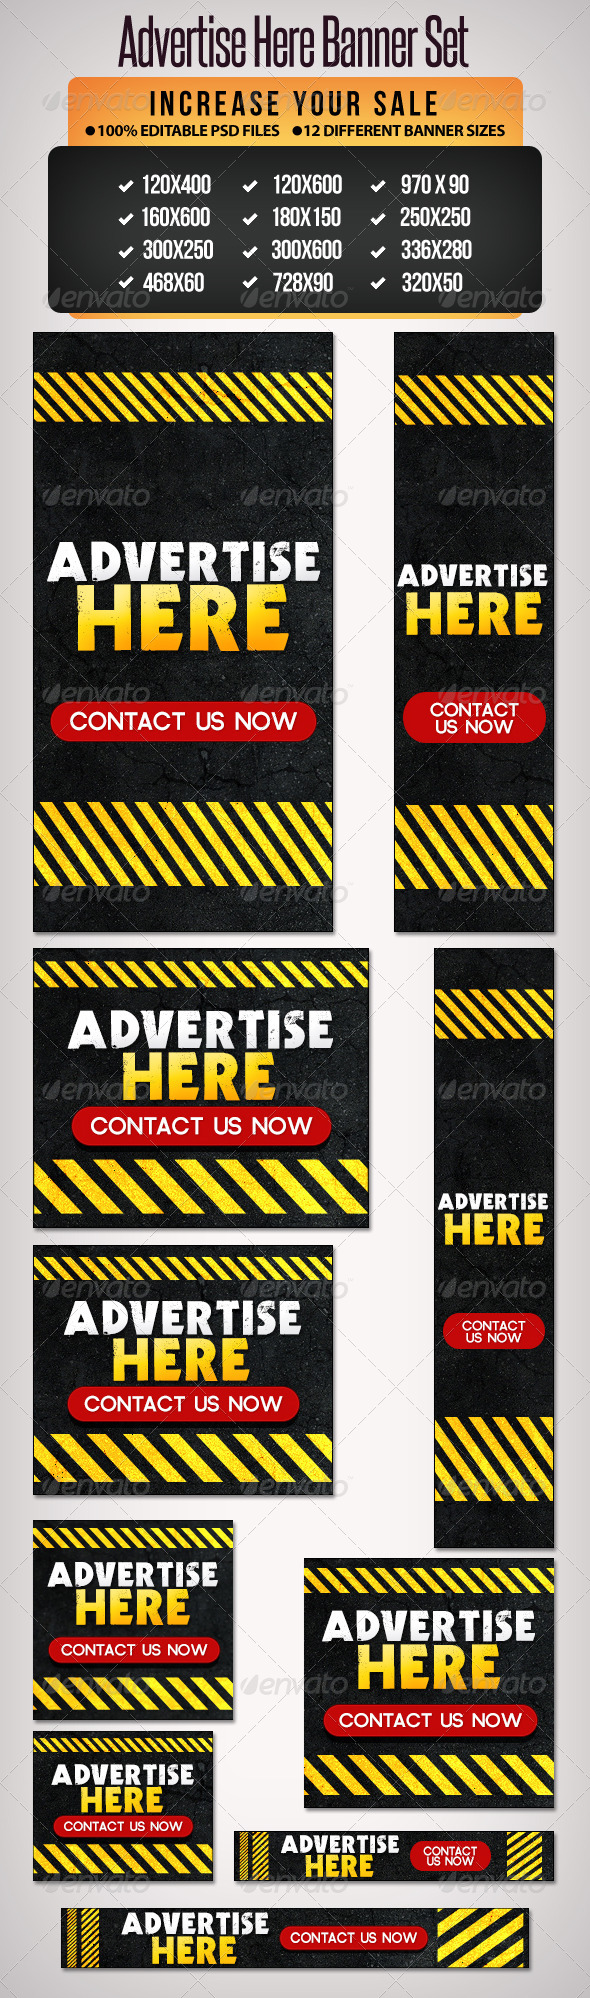 Advertise Here Banner Set 12 Google Sizes